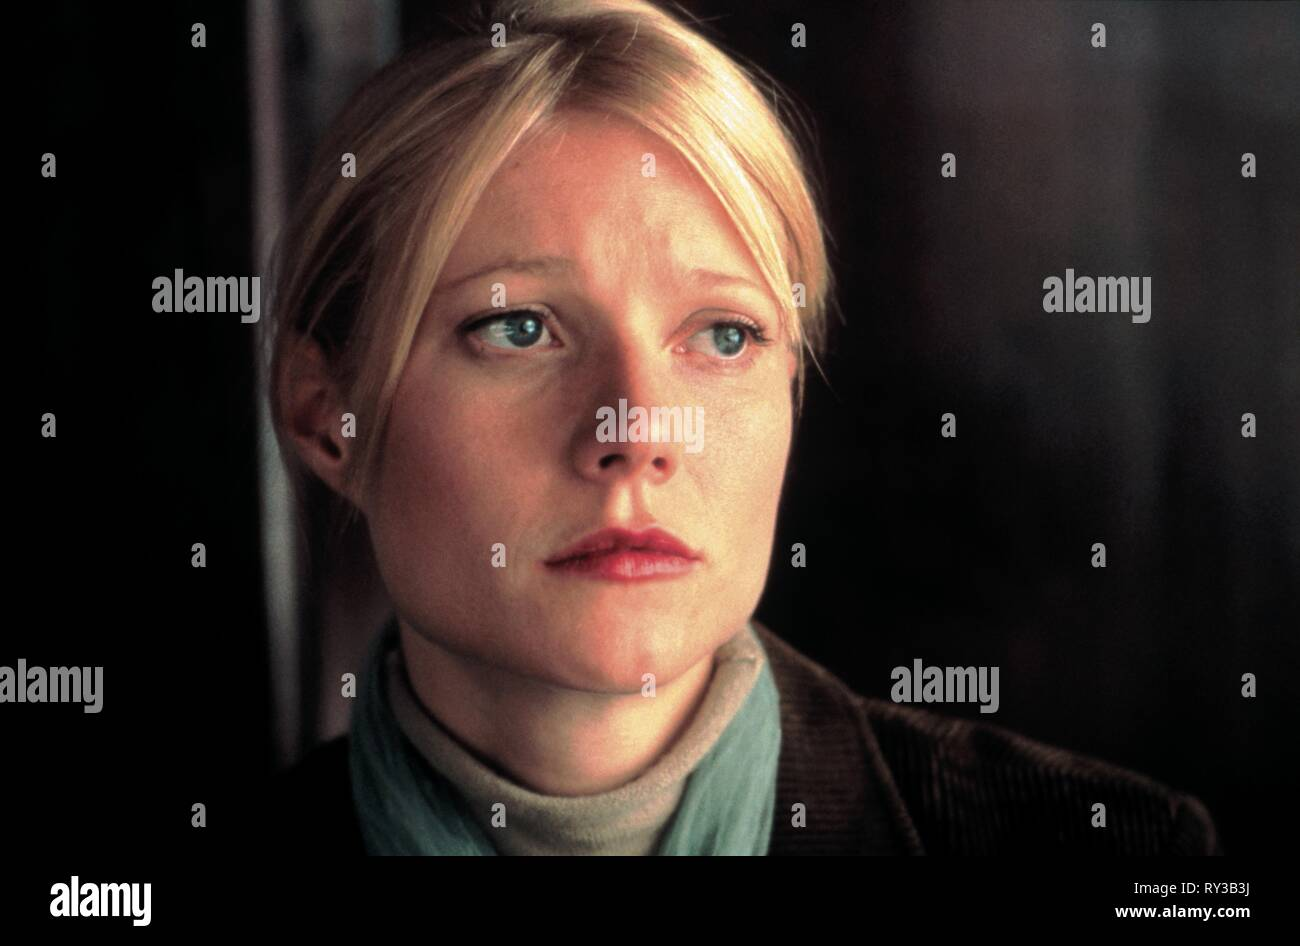 GWYNETH PALTROW, Besitz, 2002 Stockfoto